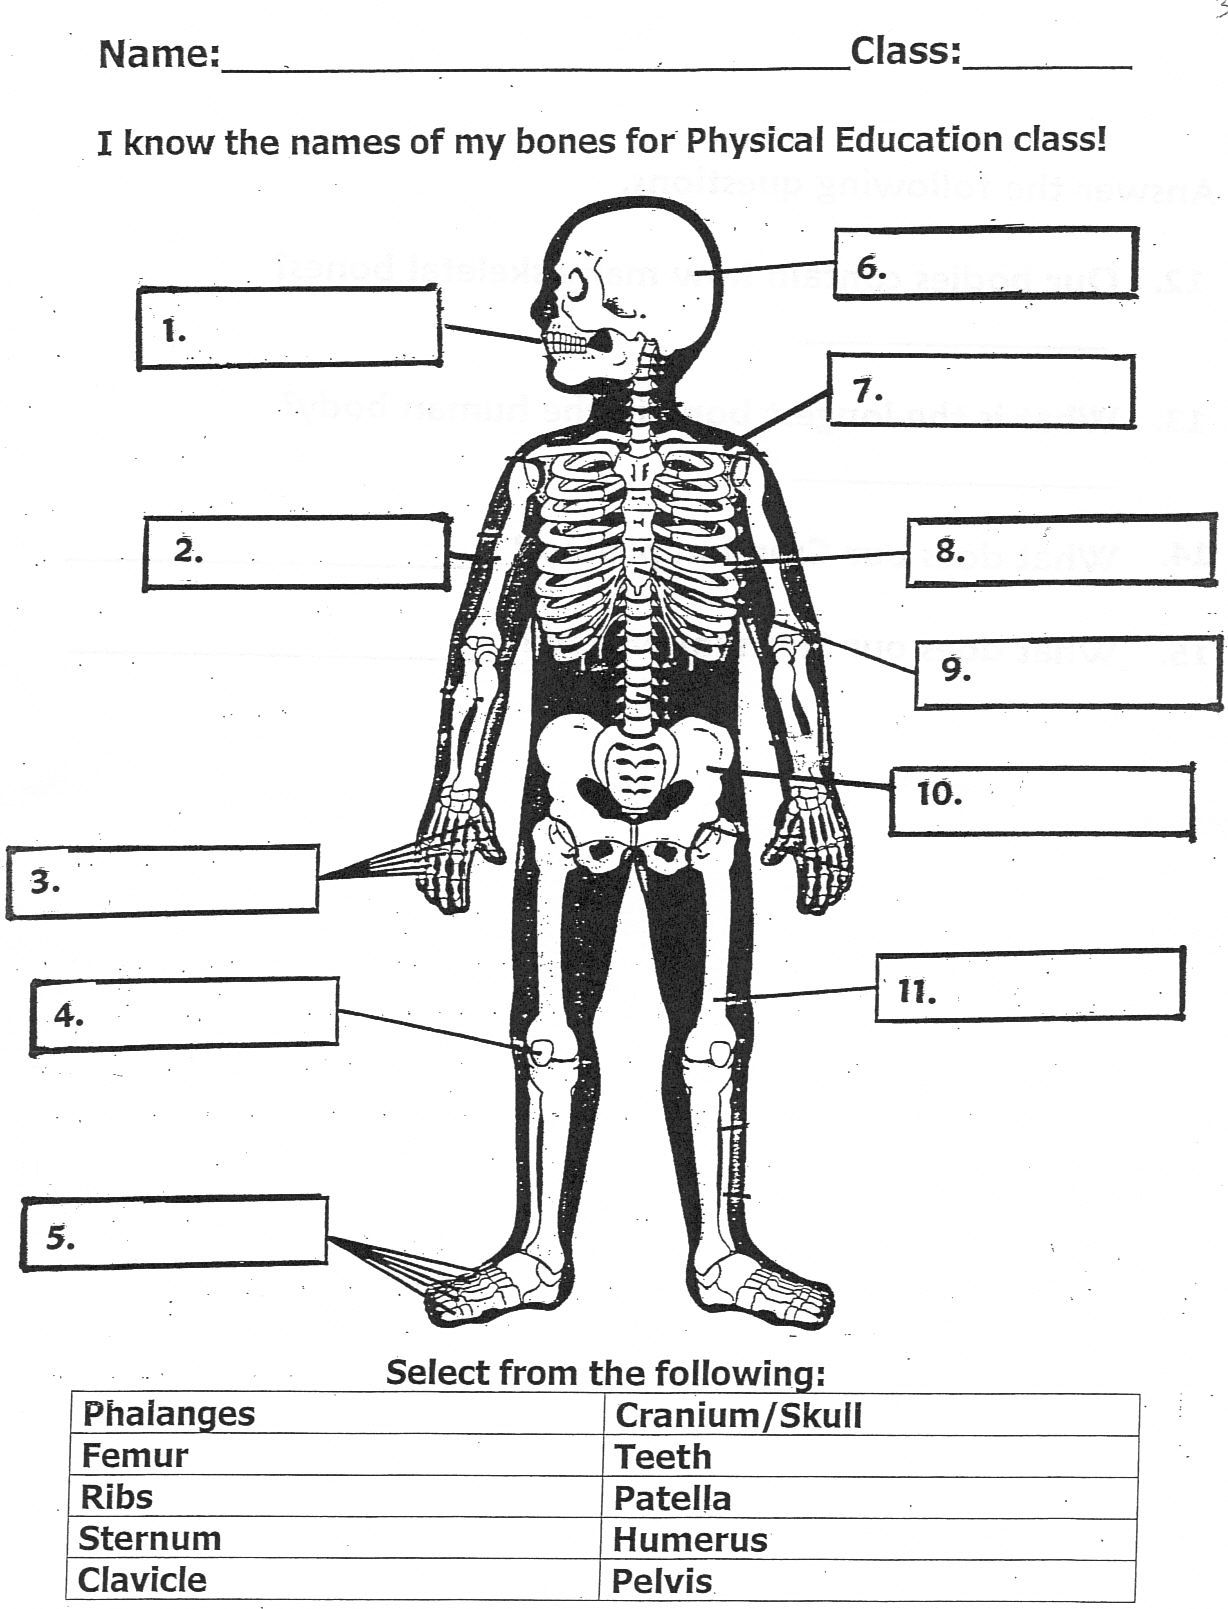 Skull Worksheet Elementary